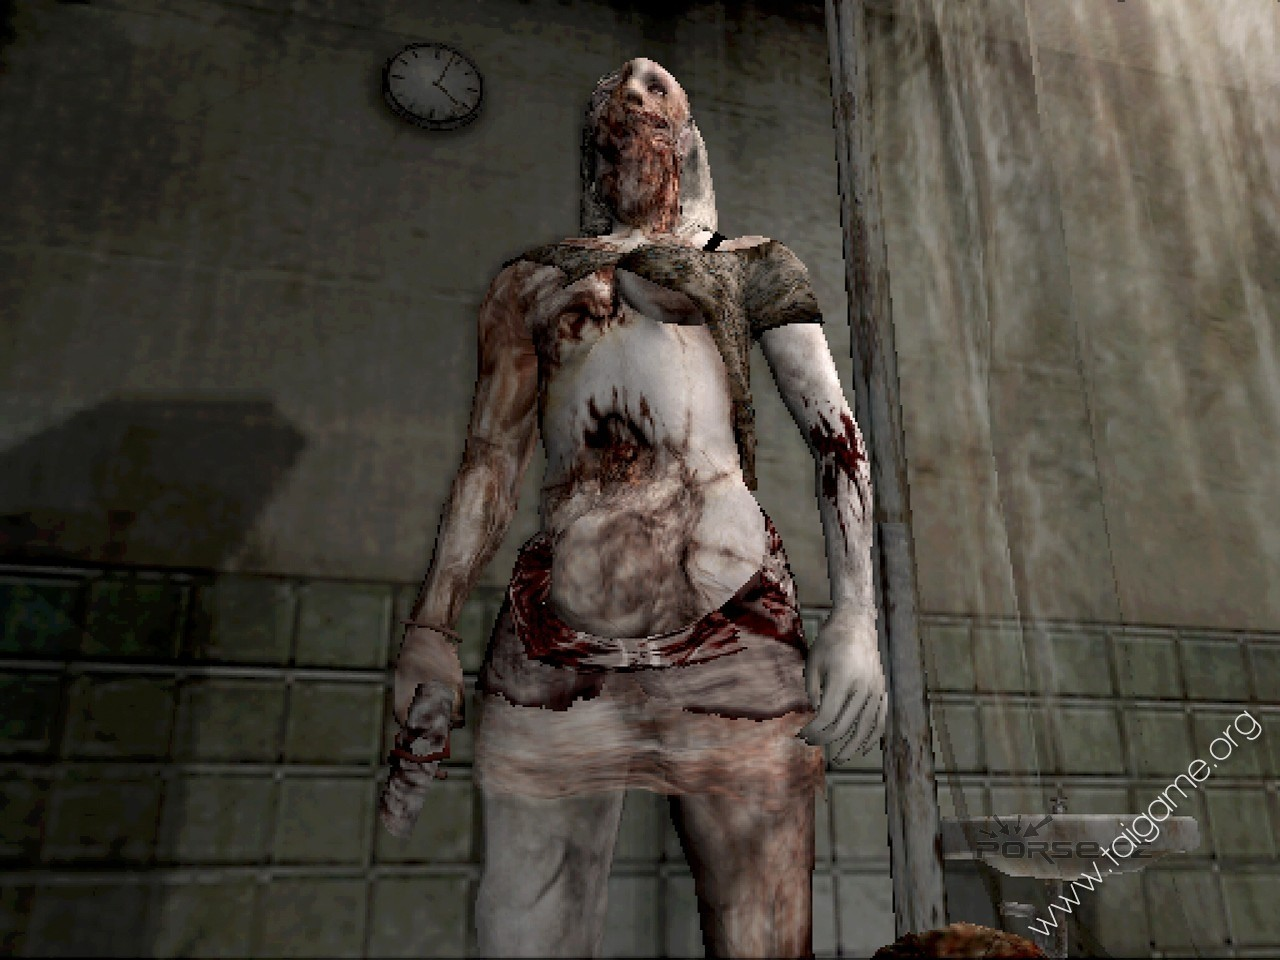 Silent hill 2 game free download winstar casino concert tickets